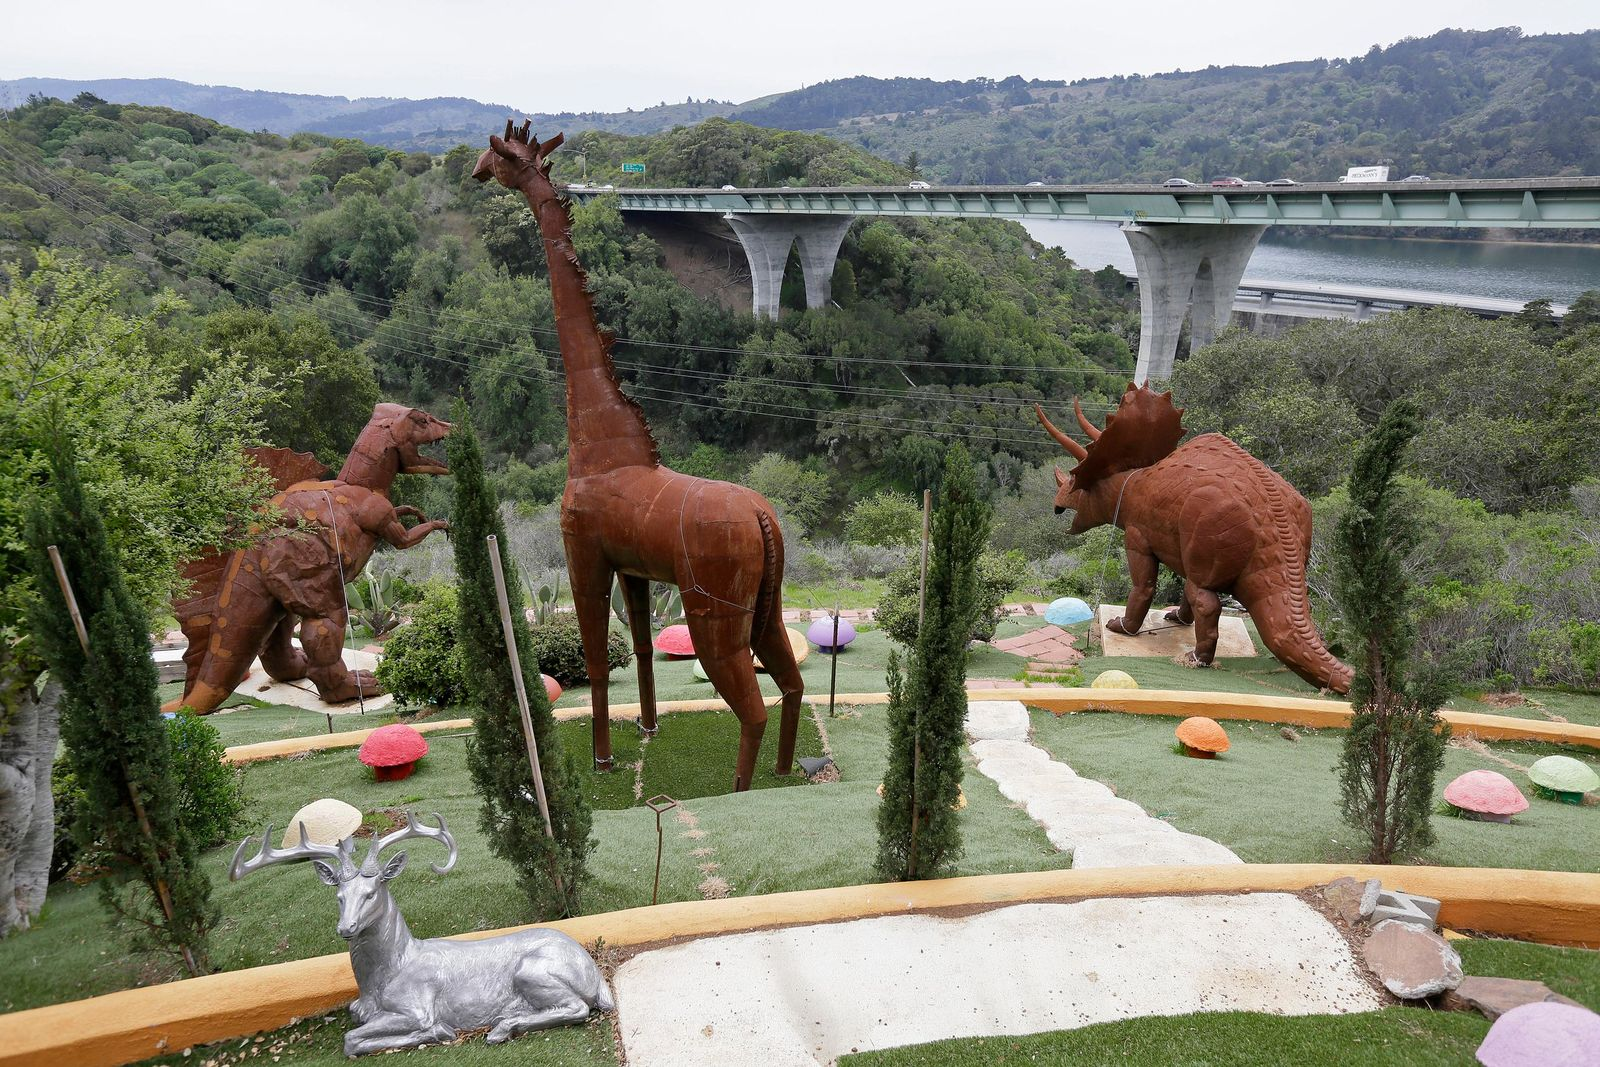 In this photo taken Monday, April 1, 2019, dinosaurs and other figures stand outside the Flintstone House overlooking Interstate 280 in Hillsborough, Calif. The San Francisco Bay Area suburb of Hillsborough is suing the owner of the house, saying that she installed dangerous steps, dinosaurs and other Flintstone-era figurines without necessary permits.  (AP Photo/Eric Risberg)